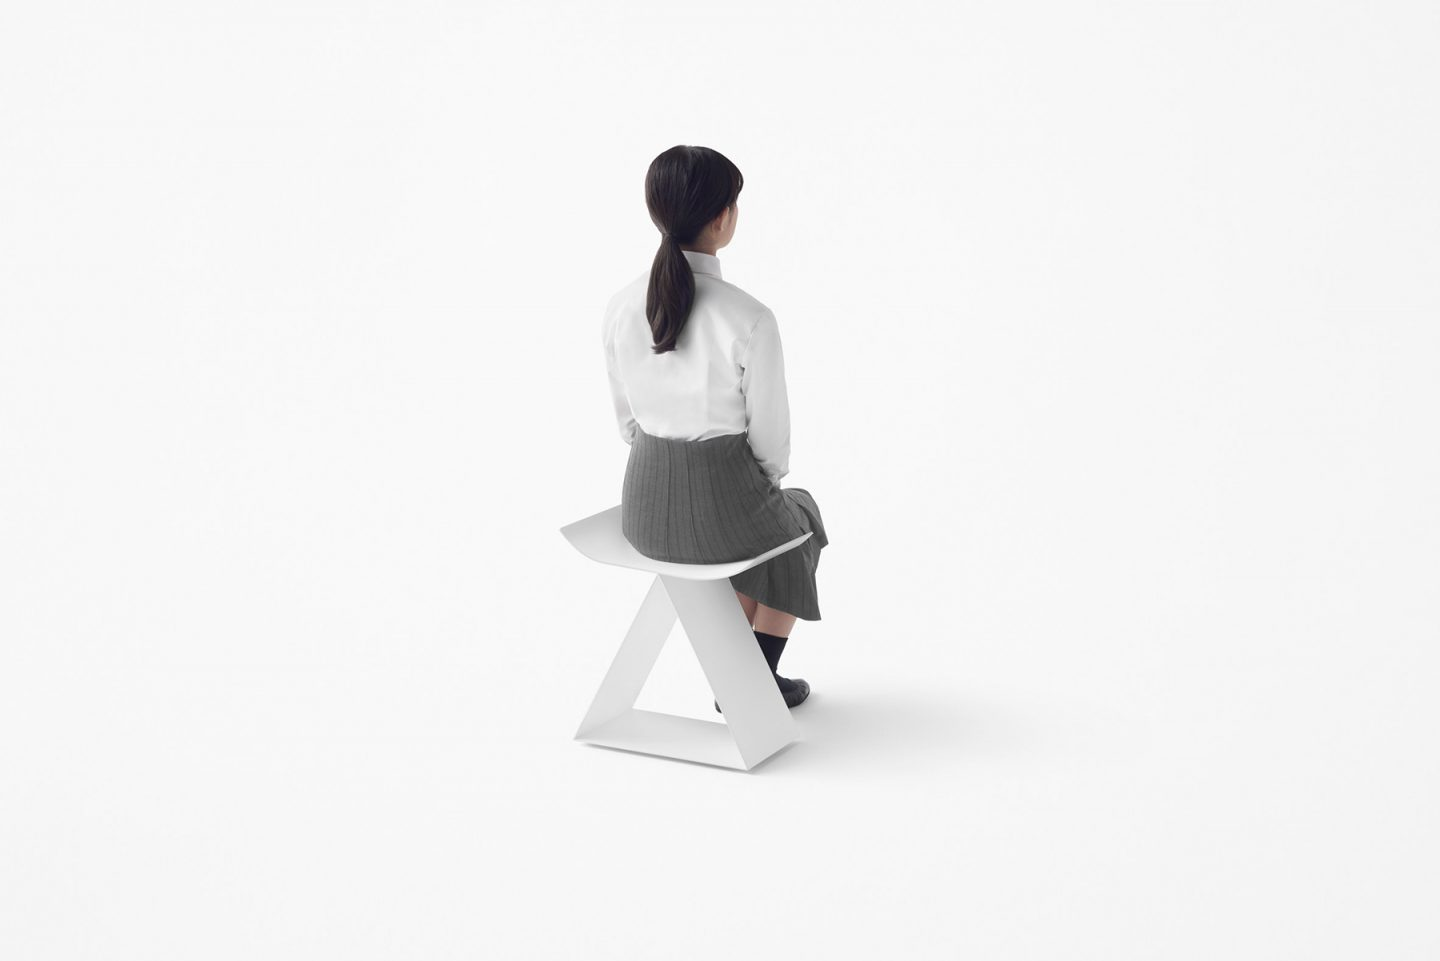 iGNANT-Design-Nendo-Zen-Collection-02